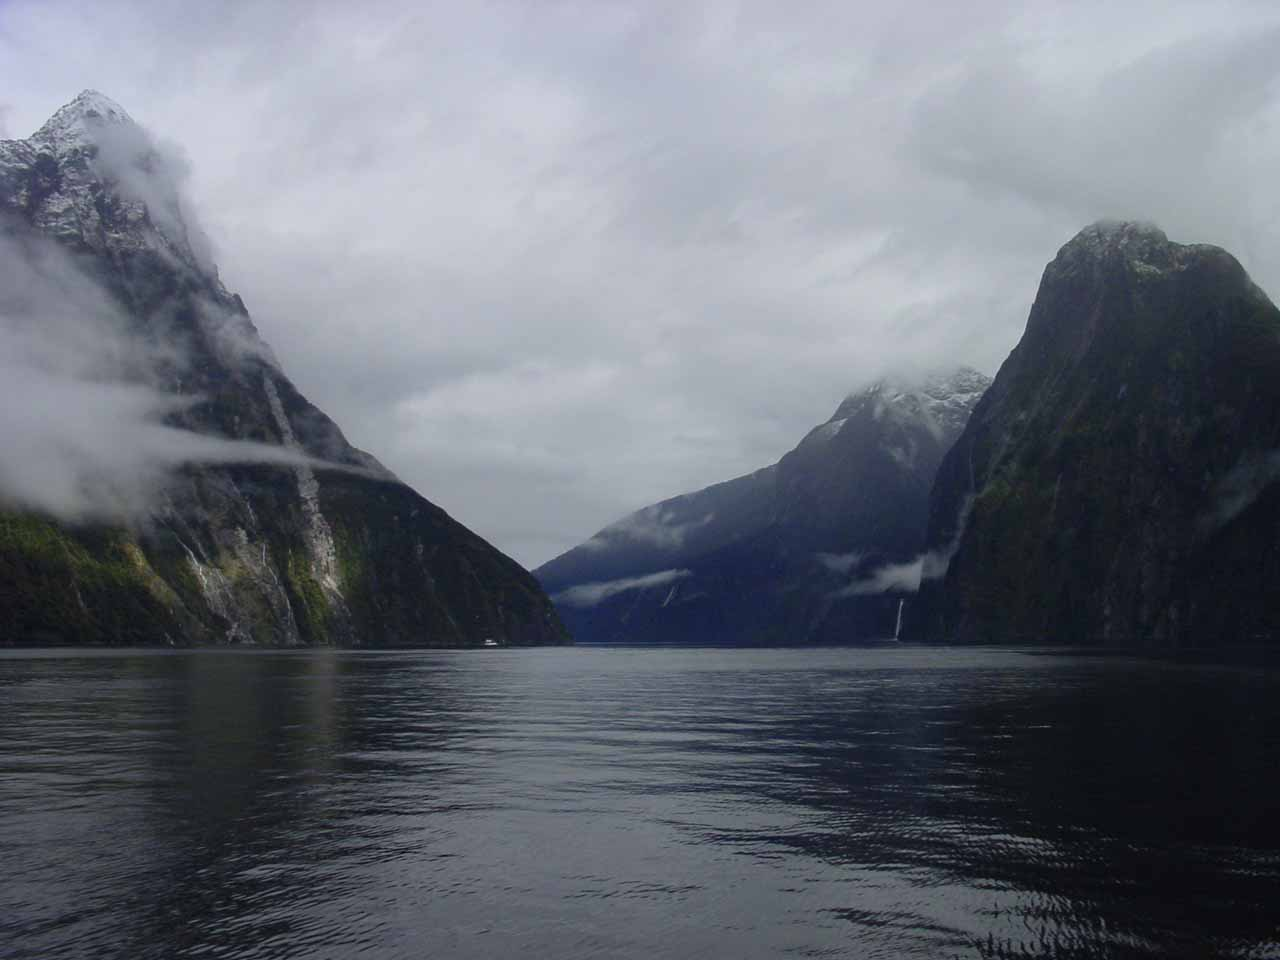 Looking ahead towards the Milford Sound from the cruise vessel